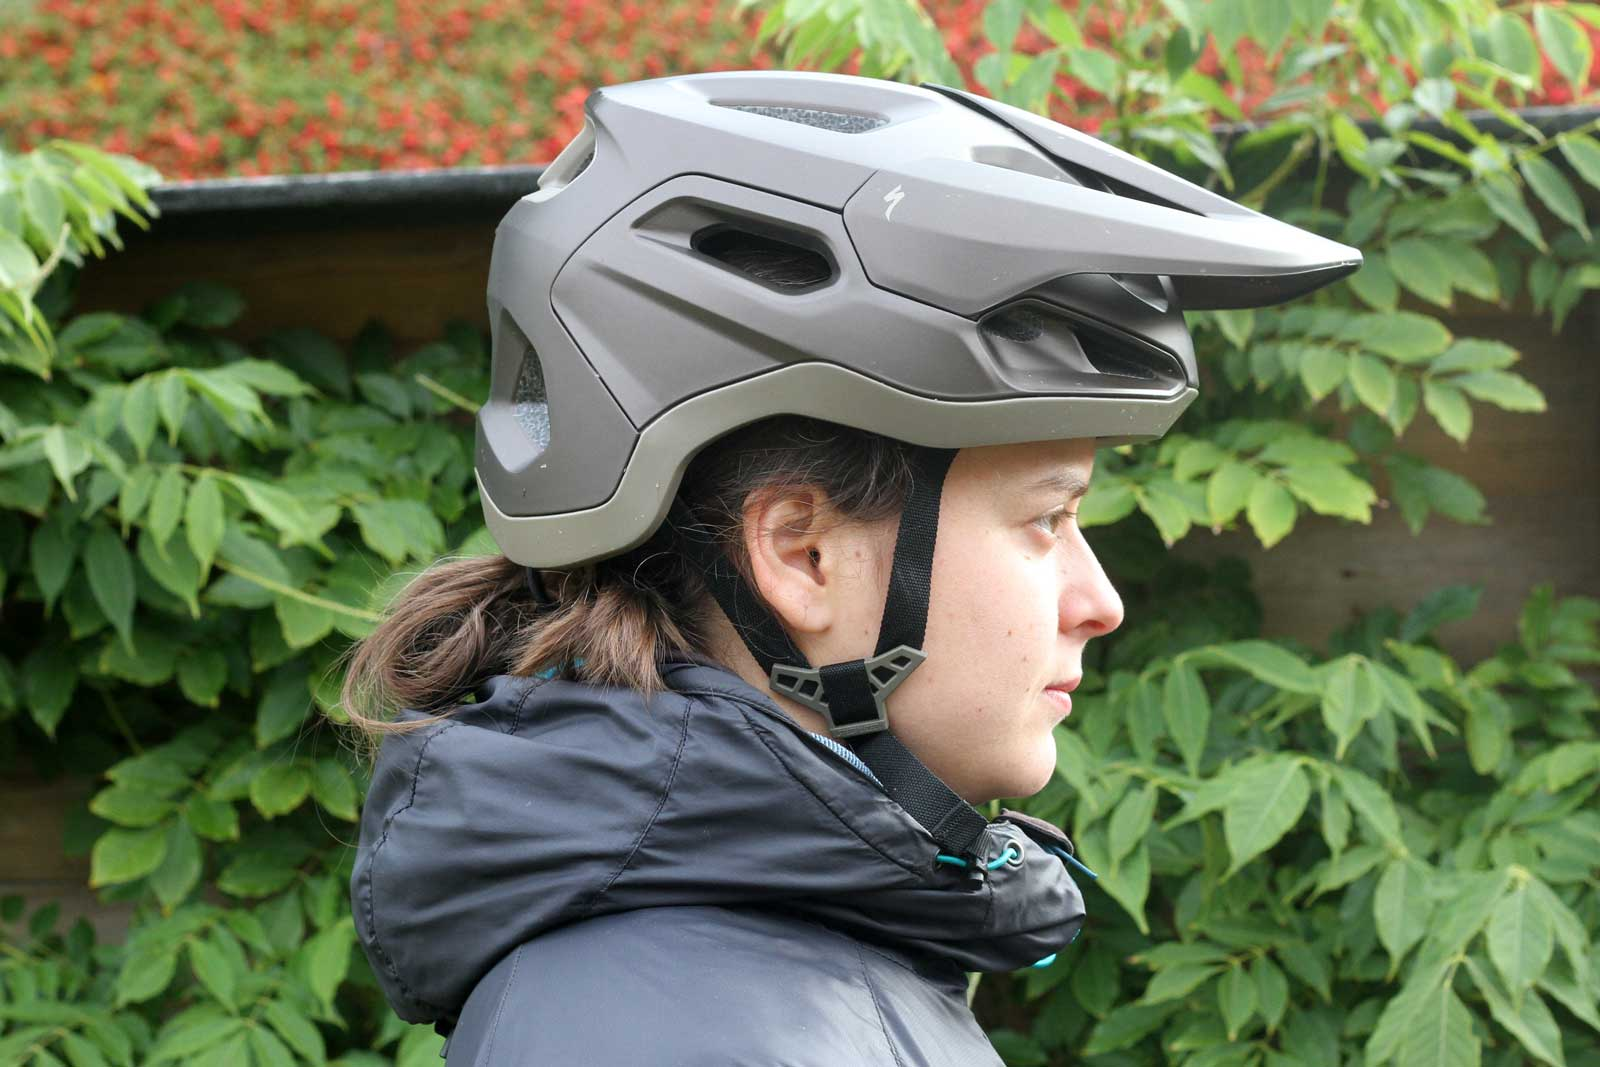 specialized tactic 4 helmet review side view